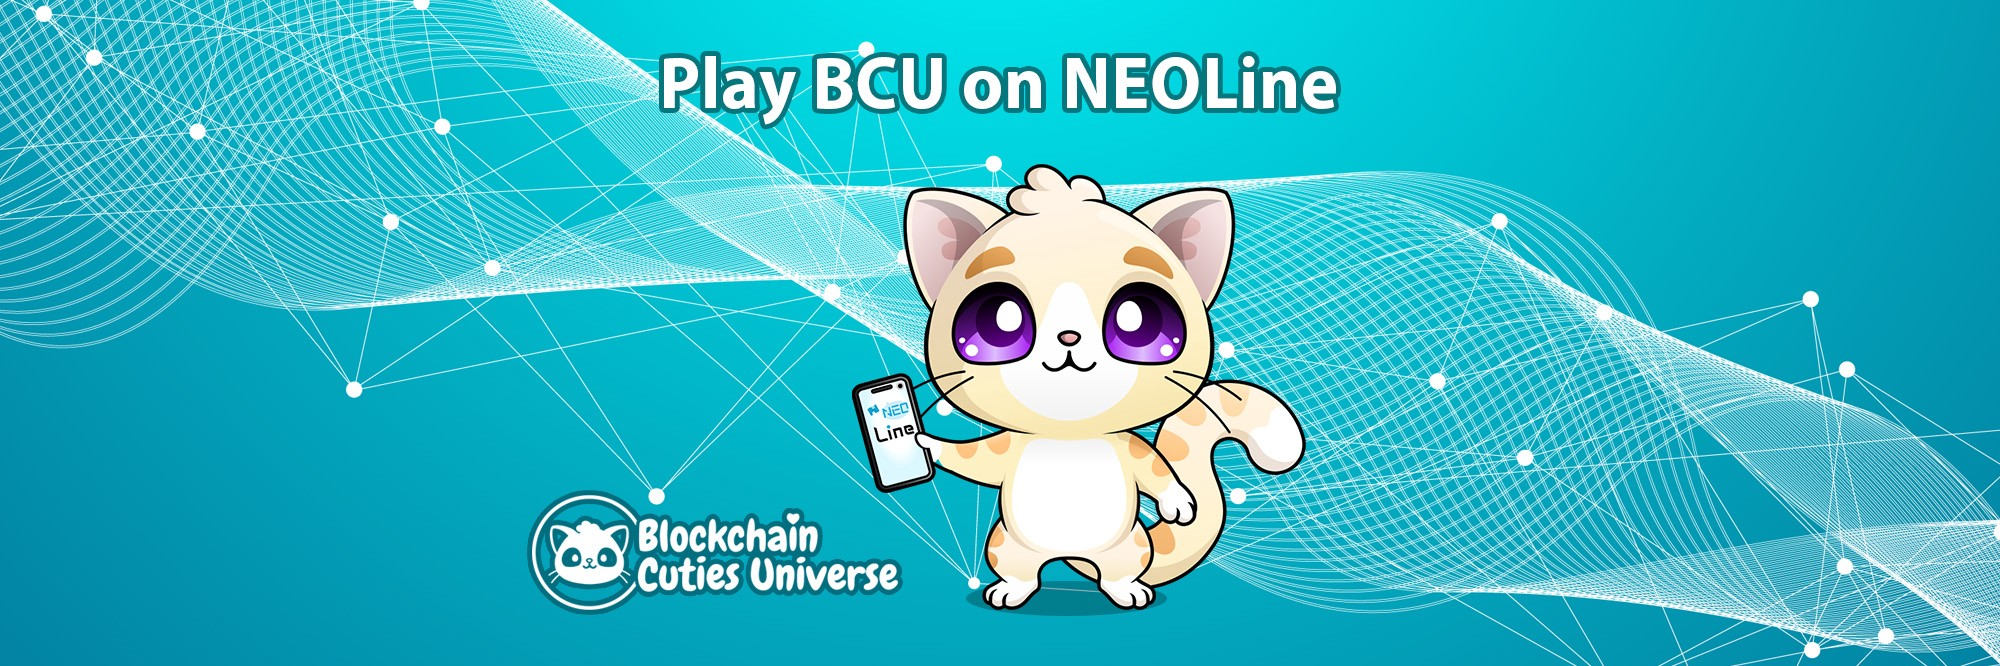 Blockchain Cuties Launched on NEOLine Mobile App